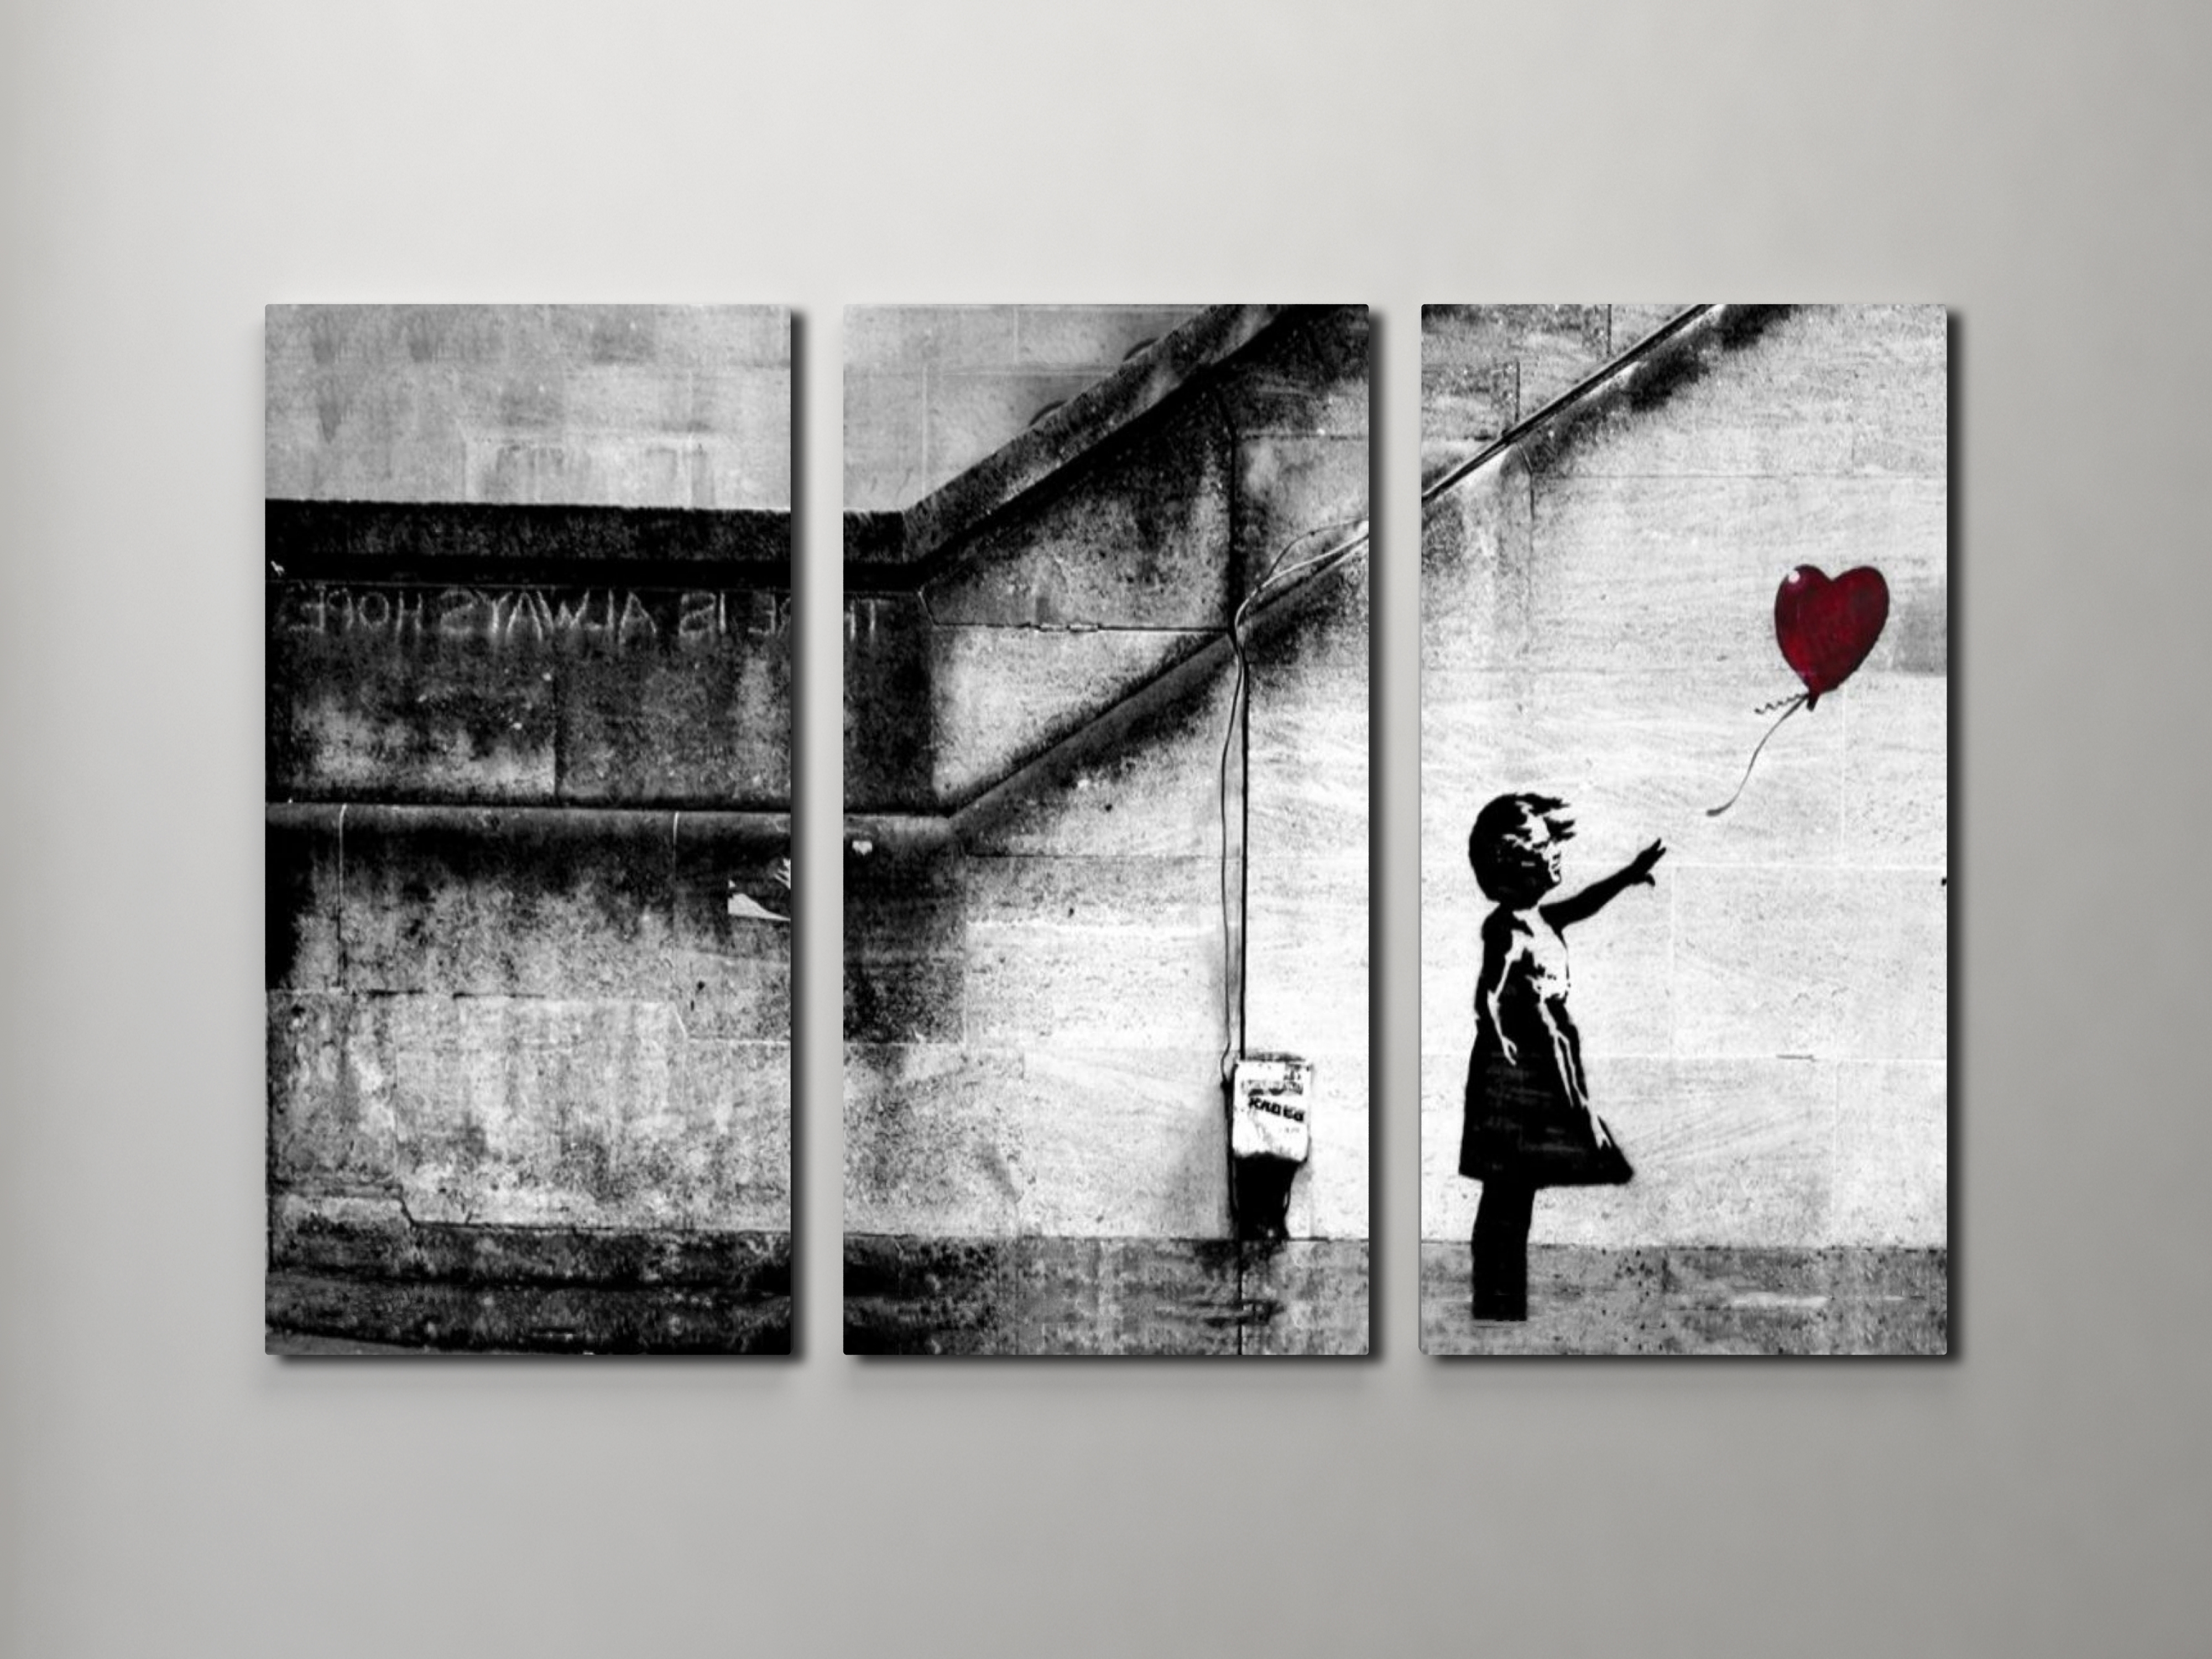 Most Current Banksy Girl With Balloon Triptych Canvas Wall Art With  Triptych Art For Sale (